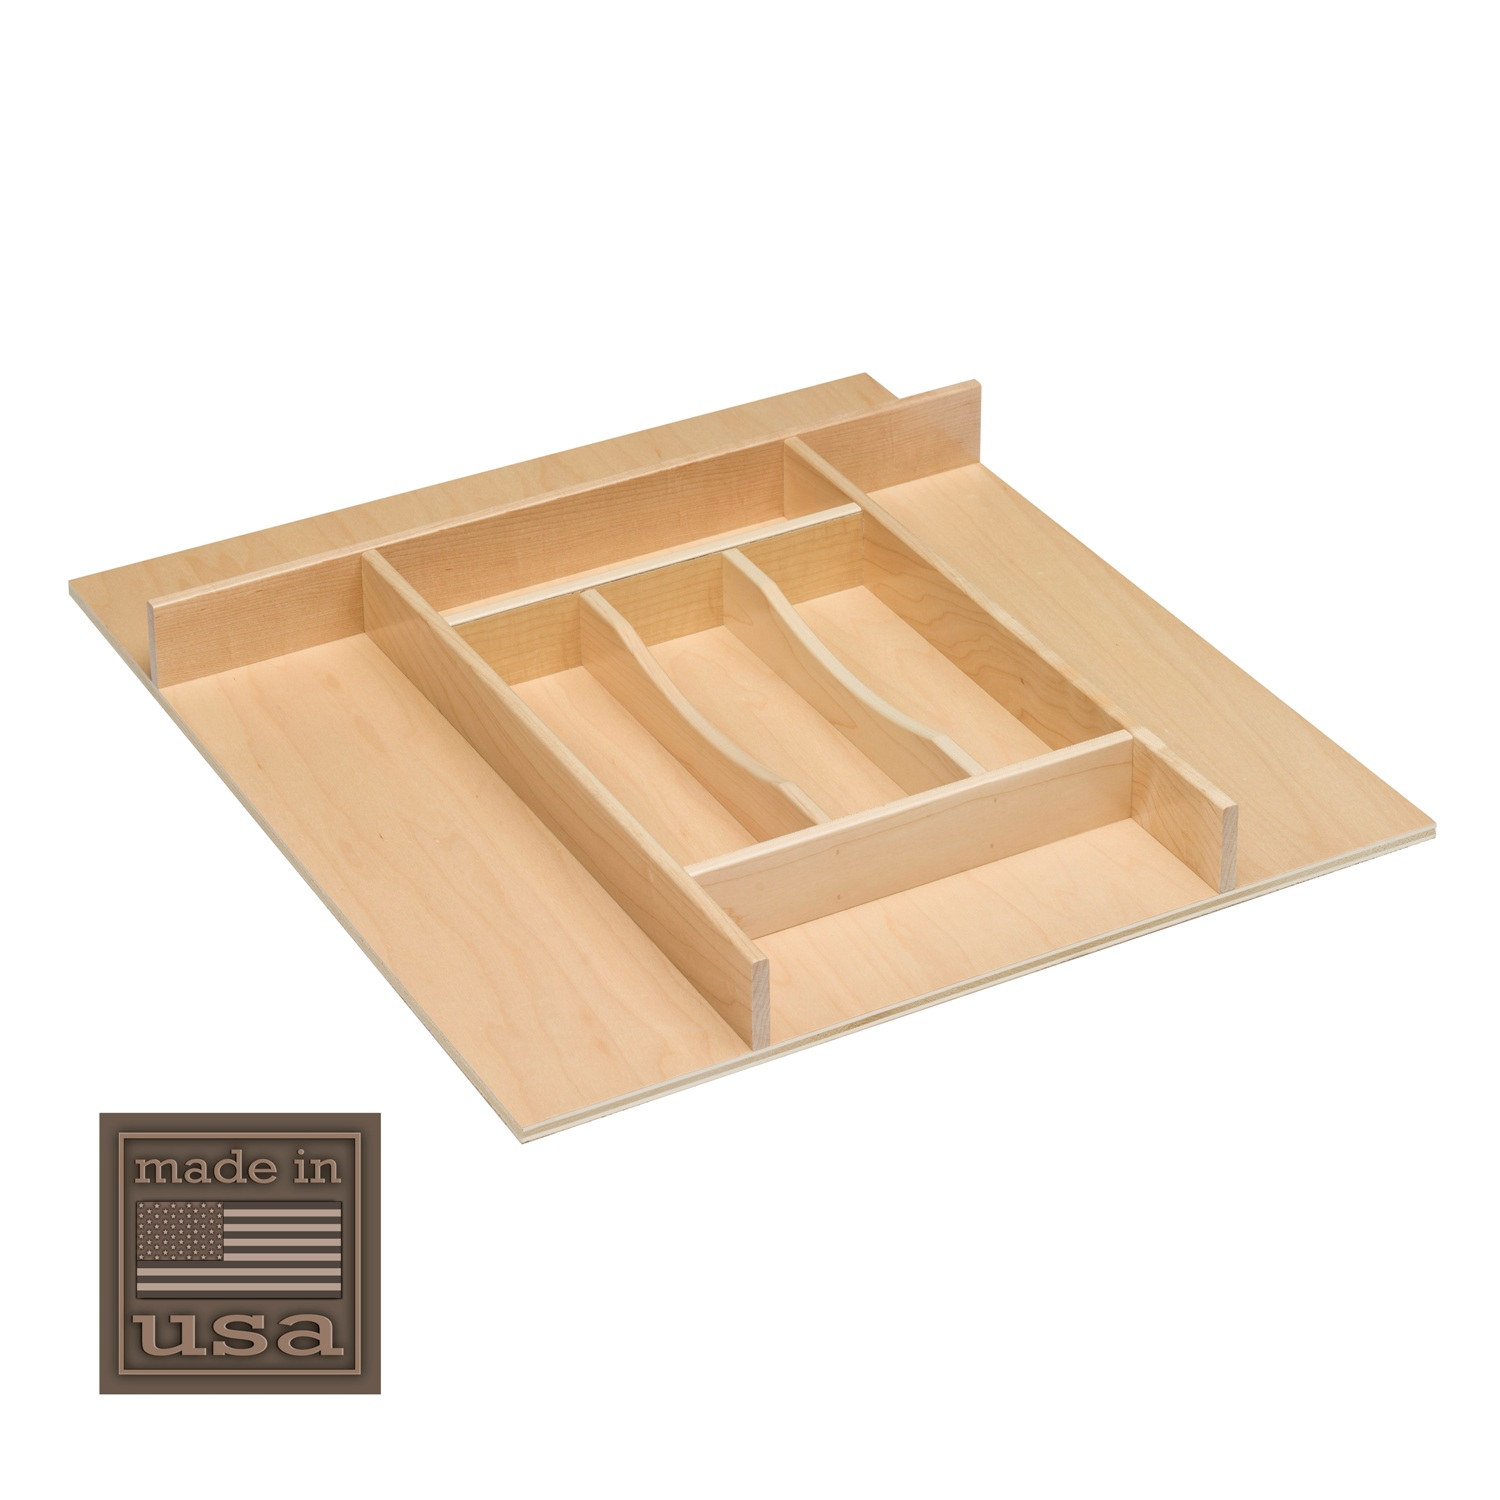 "Century Components TTKF20PF Wood Silverware Tray Drawer Organizer, 20"" x 22"" Trimmable by"